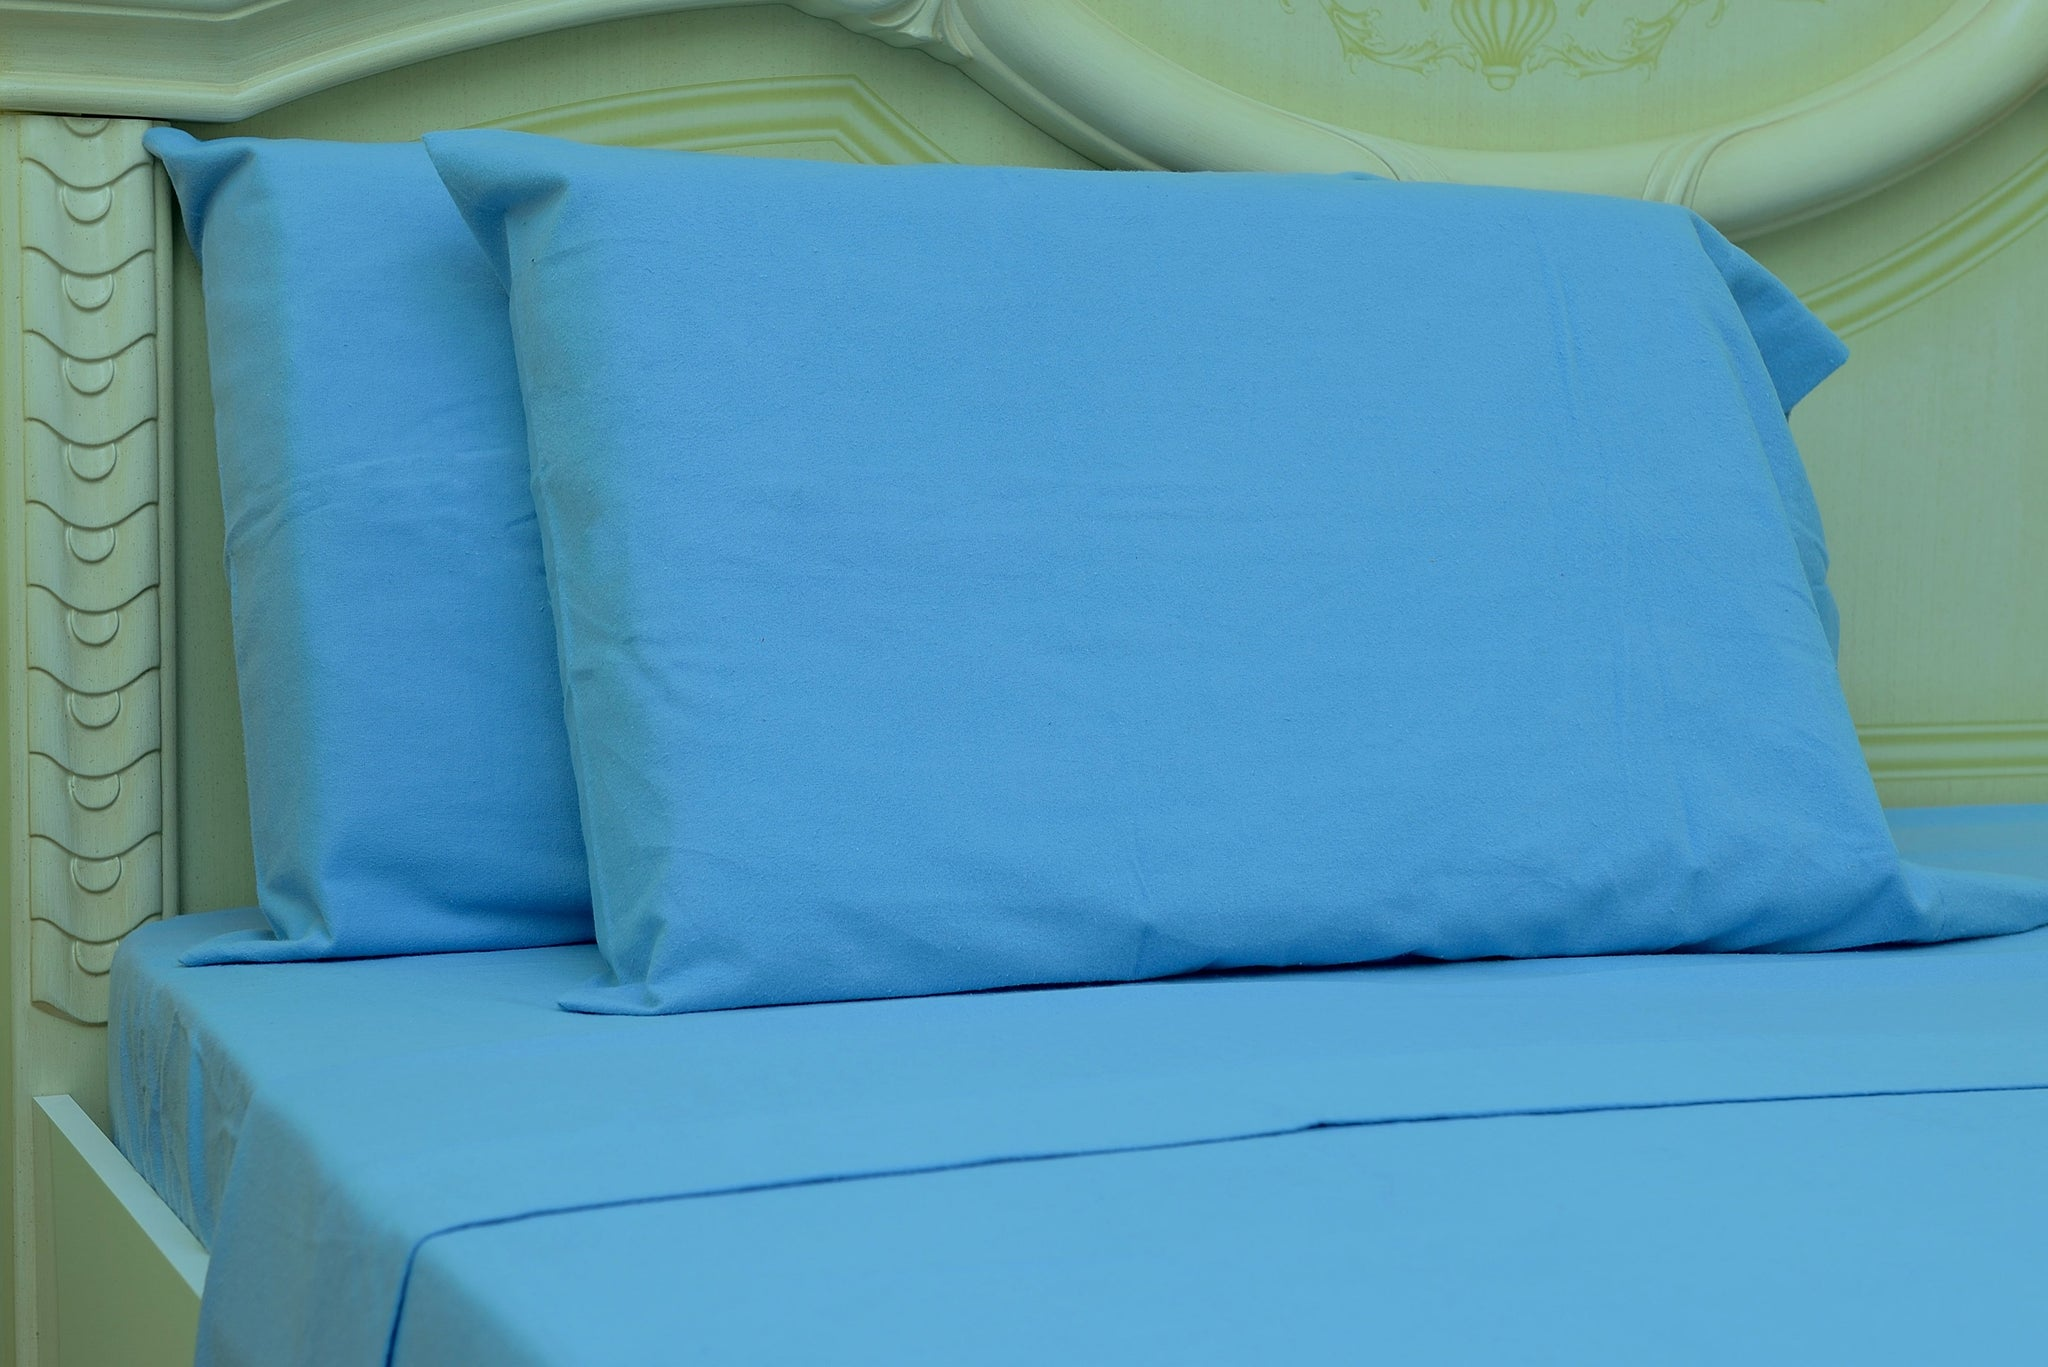 Flannel Fitted Sheet - %100 Cotton, Brushed, Top Sheet -Sky Blue- Queen Size